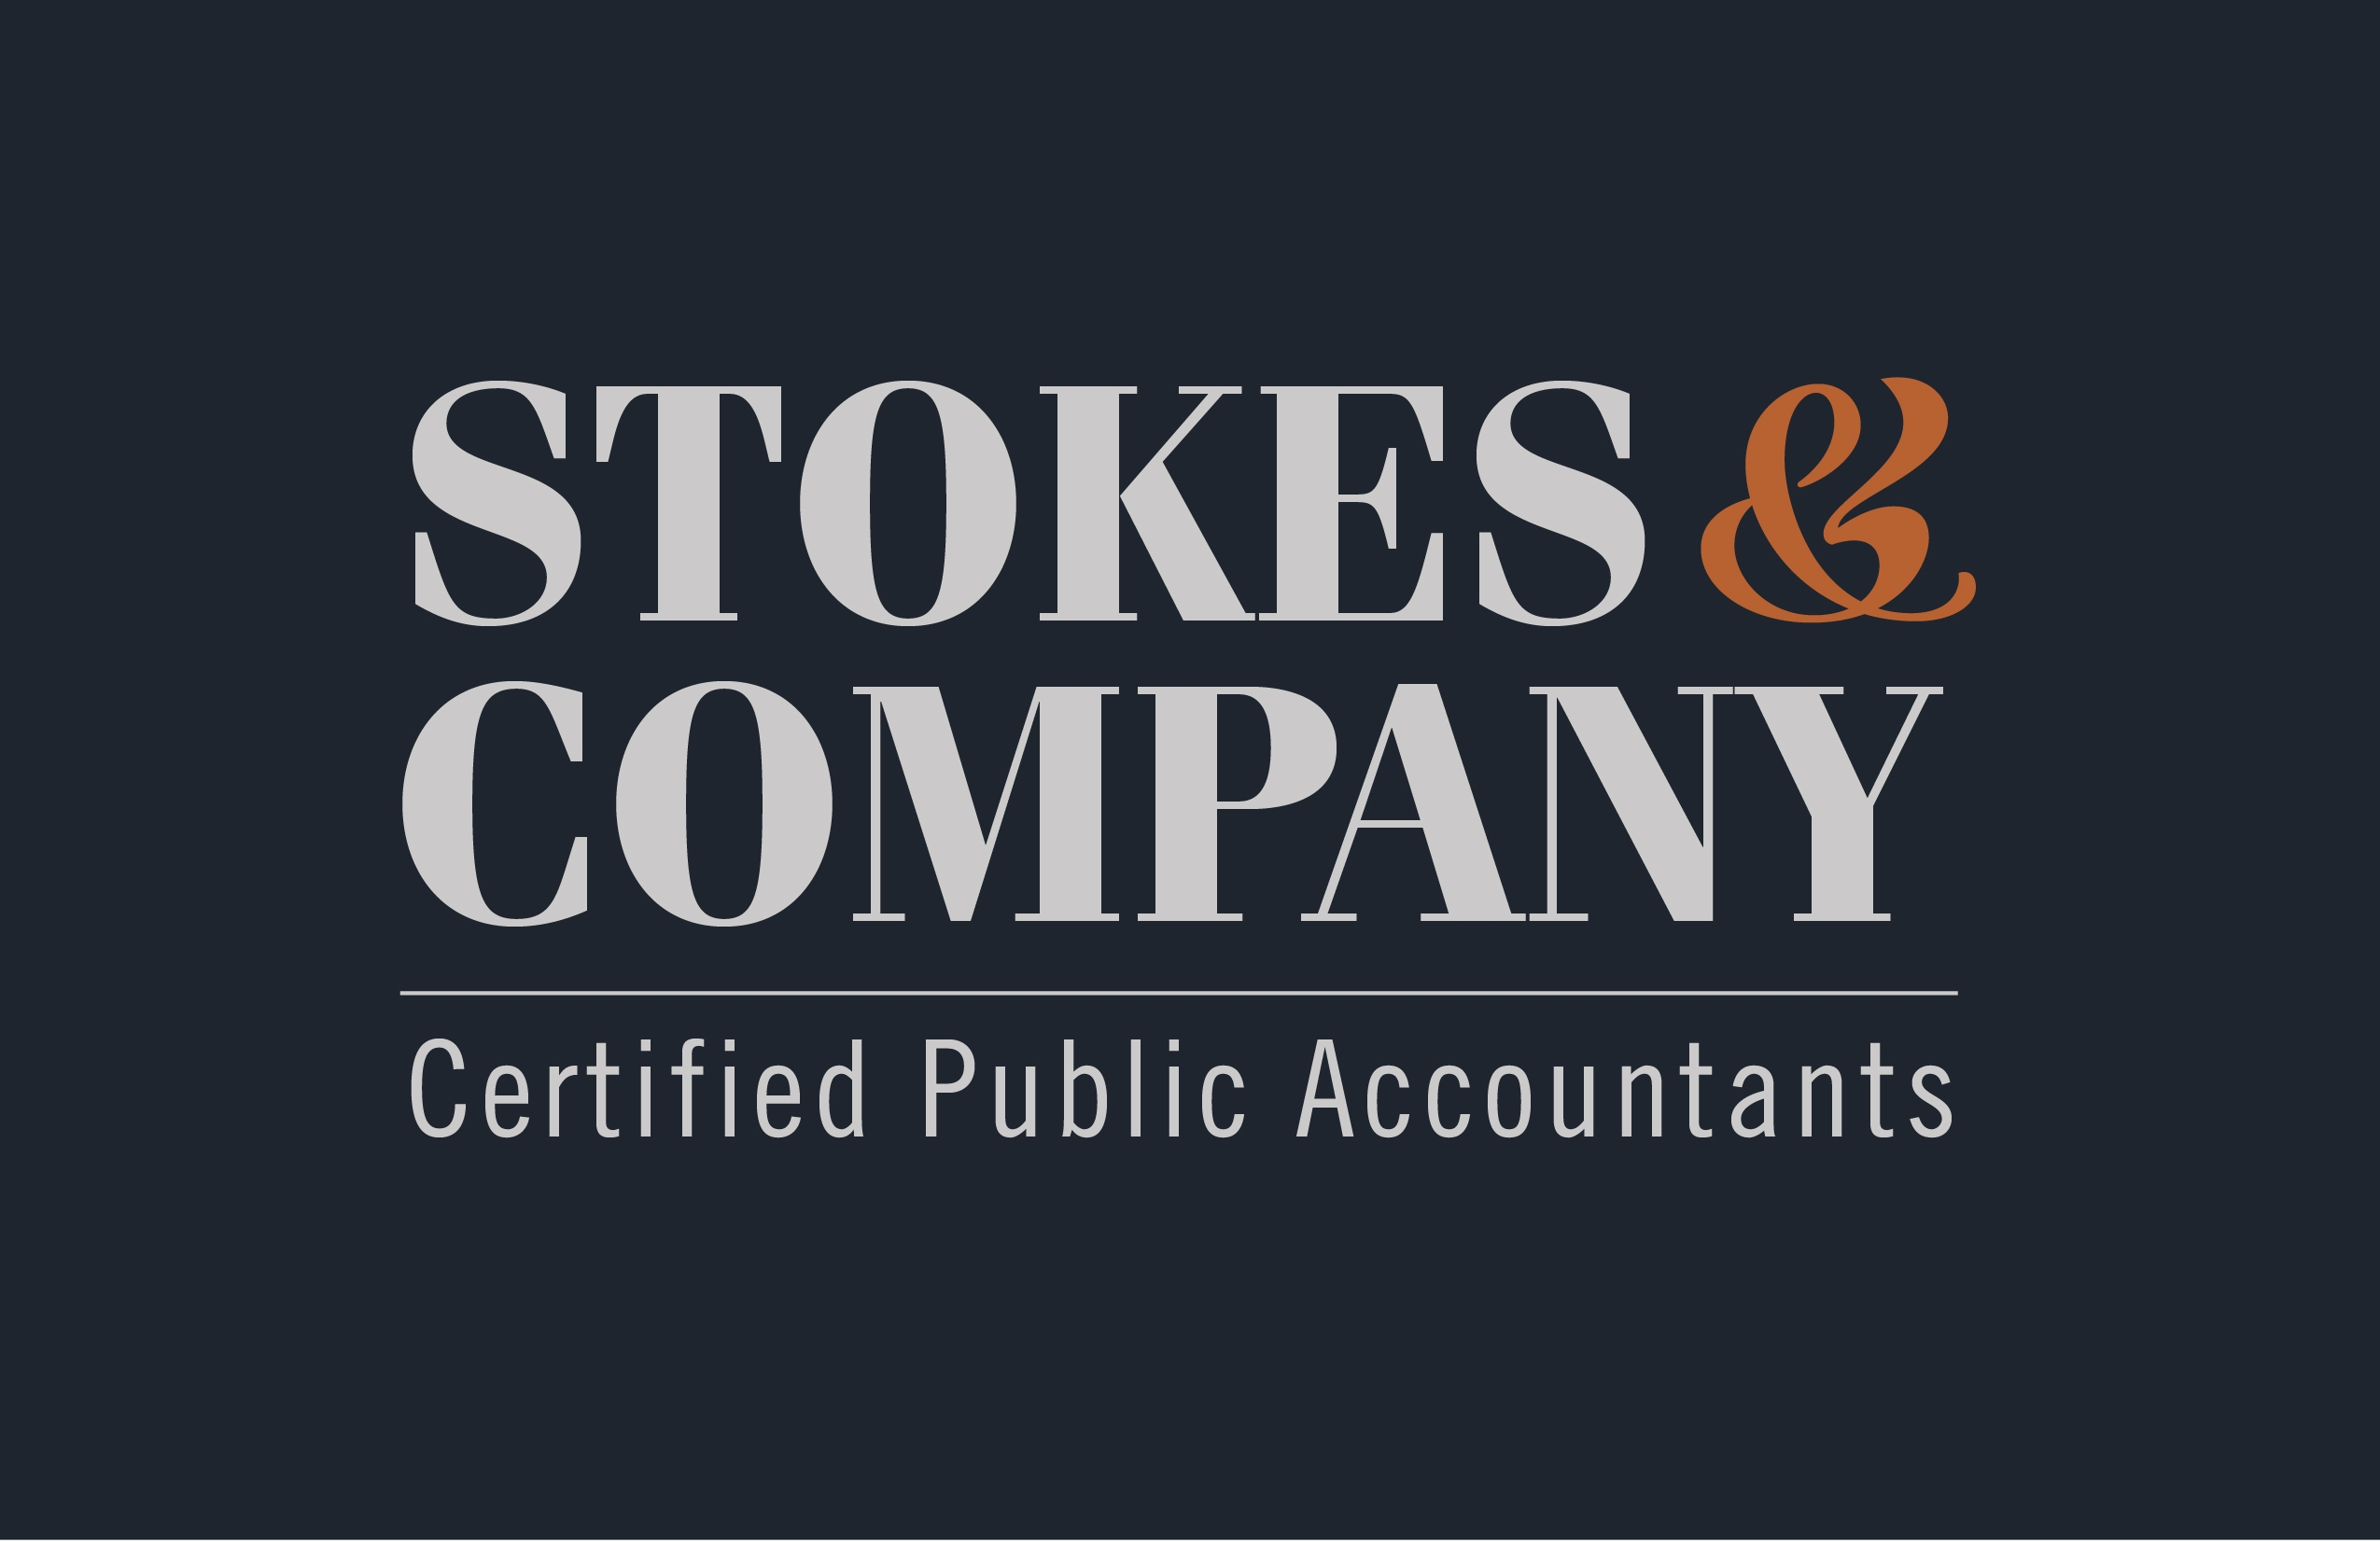 High res stokes   company logo 2